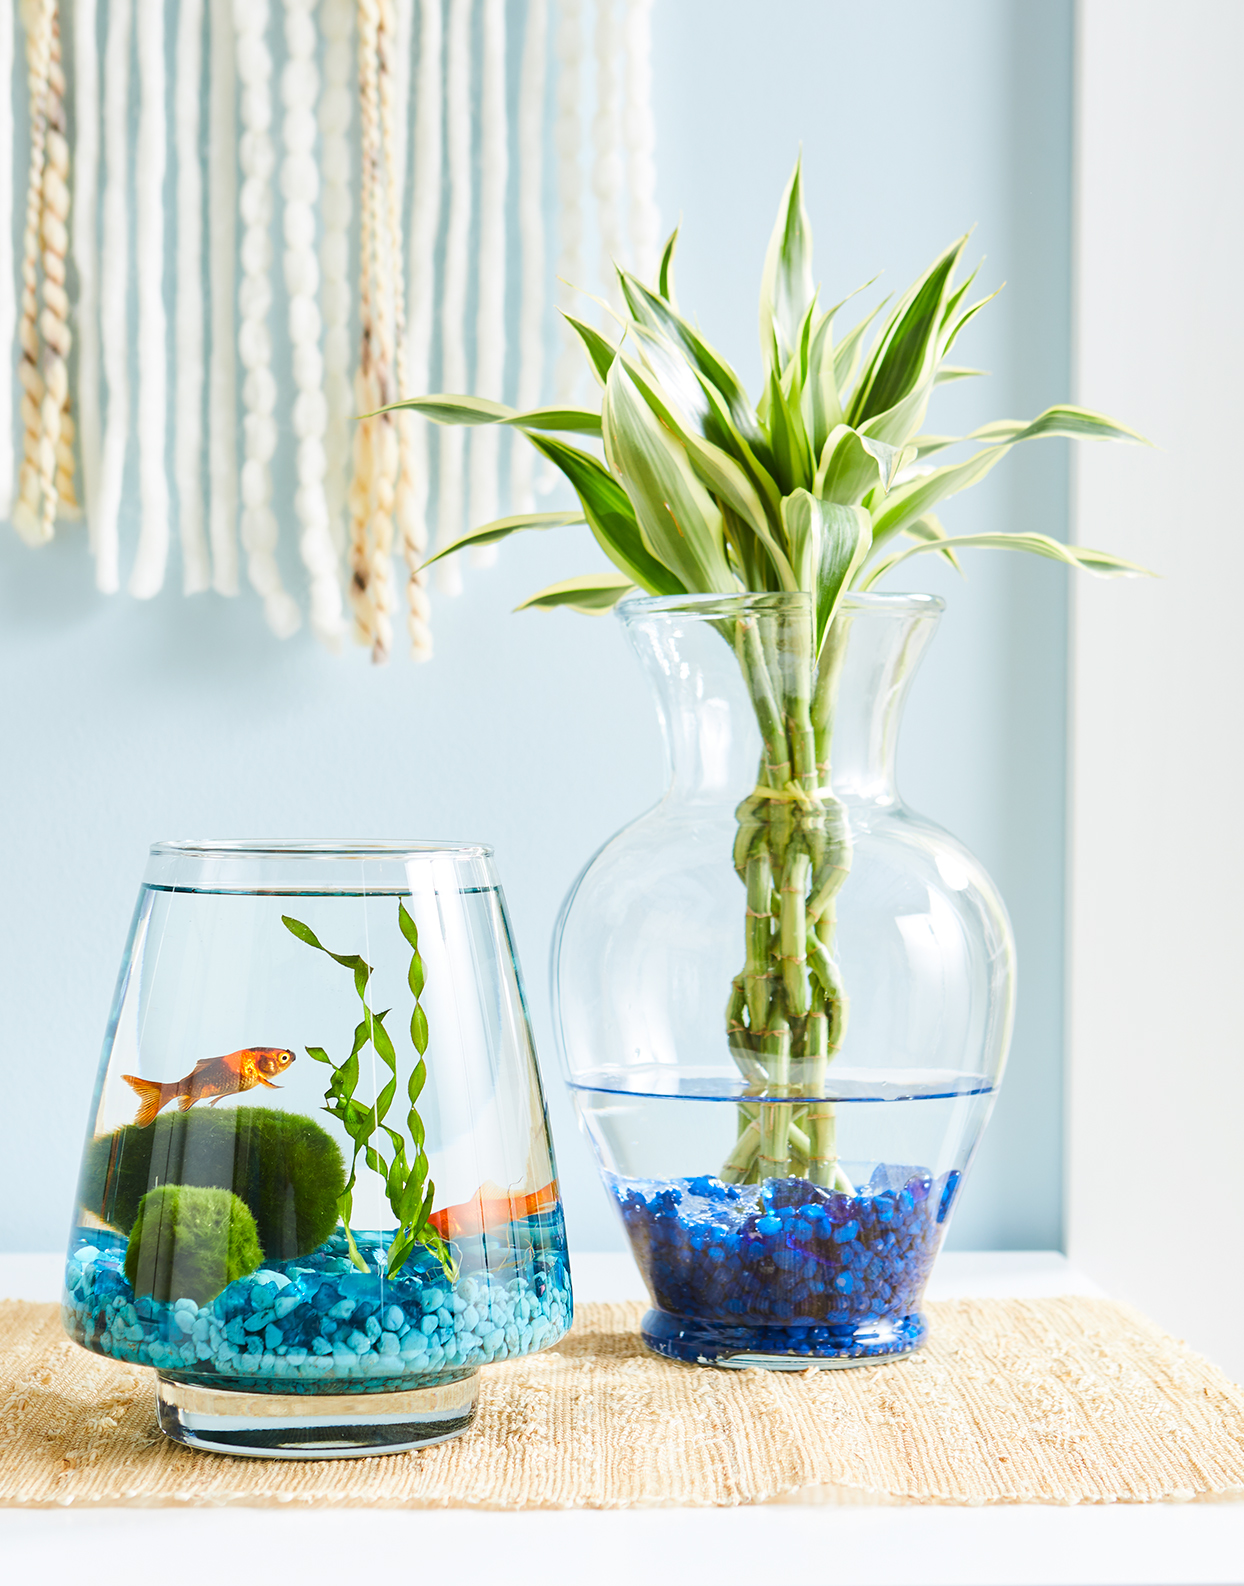 lucky bamboo plant next to goldfish